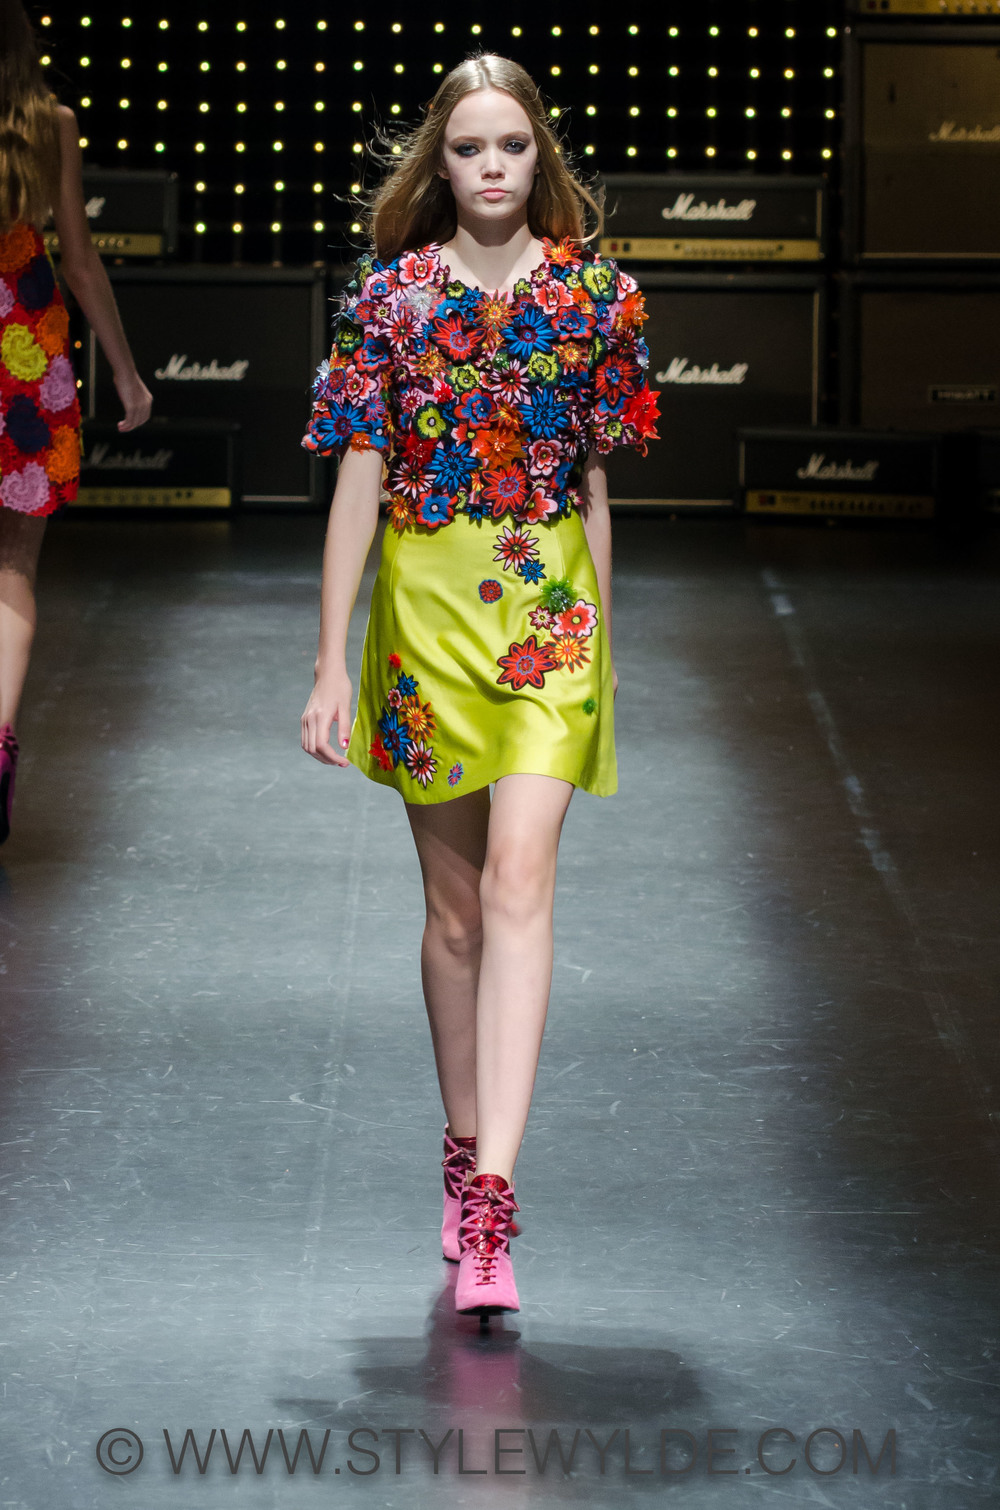 stylewylde_HouseofHolland_SS15 (54 of 68).jpg